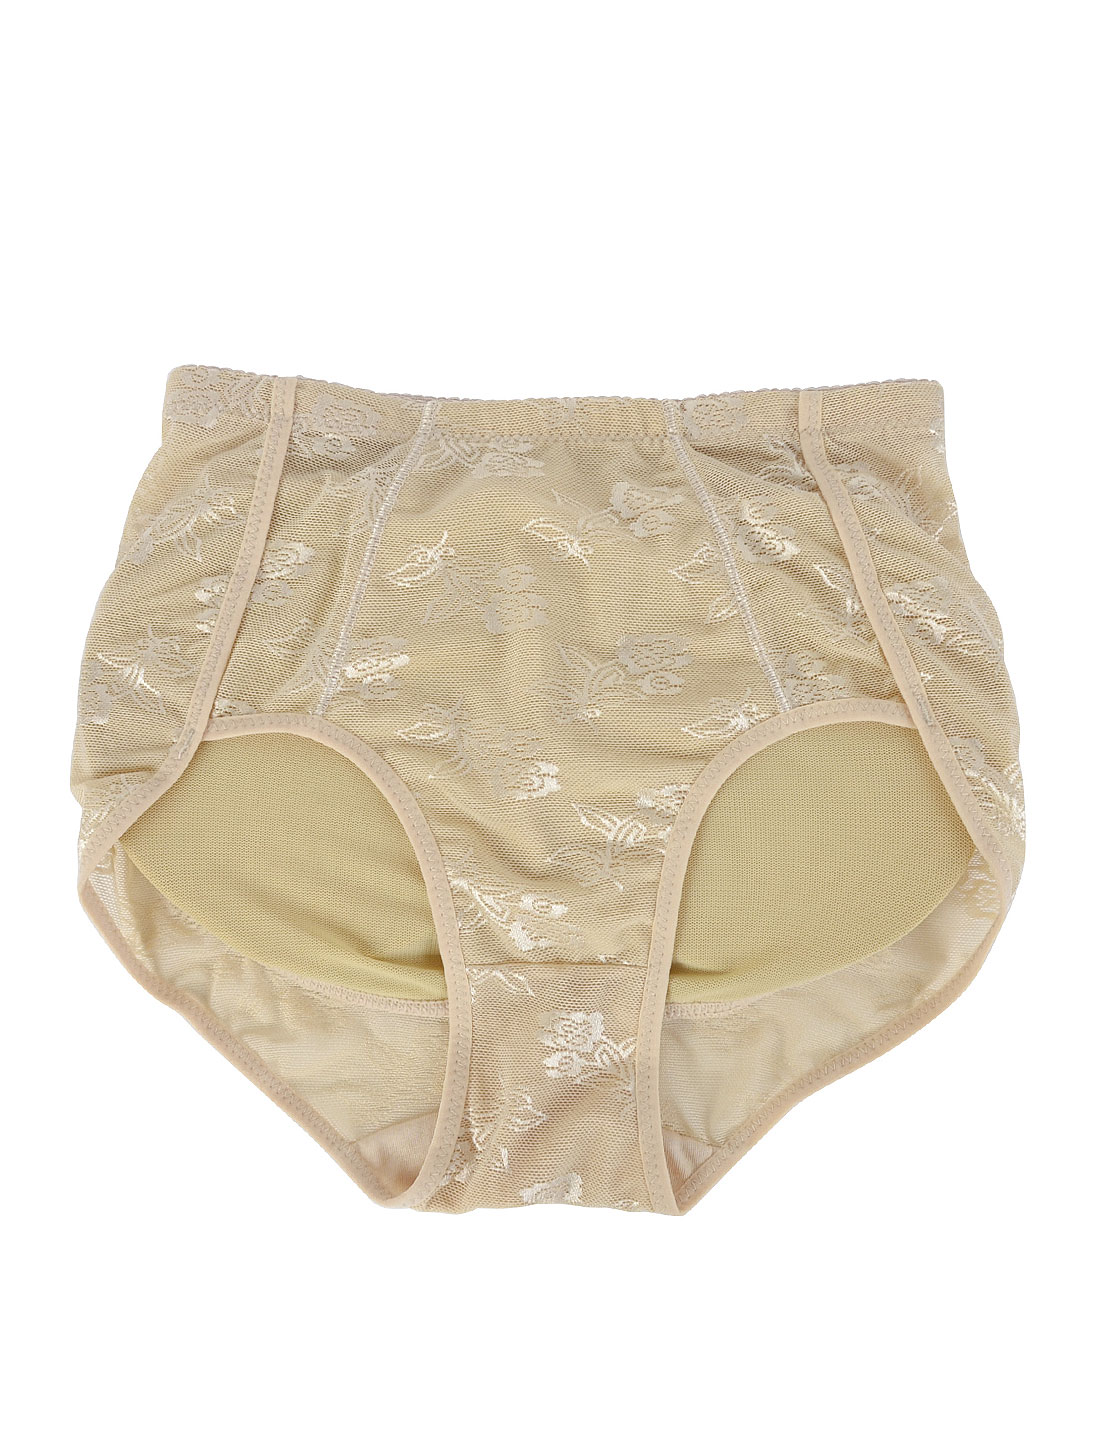 Woman Stretch Waistband Hold Buttocks Shaper Underwear Panties Briefs Beige M